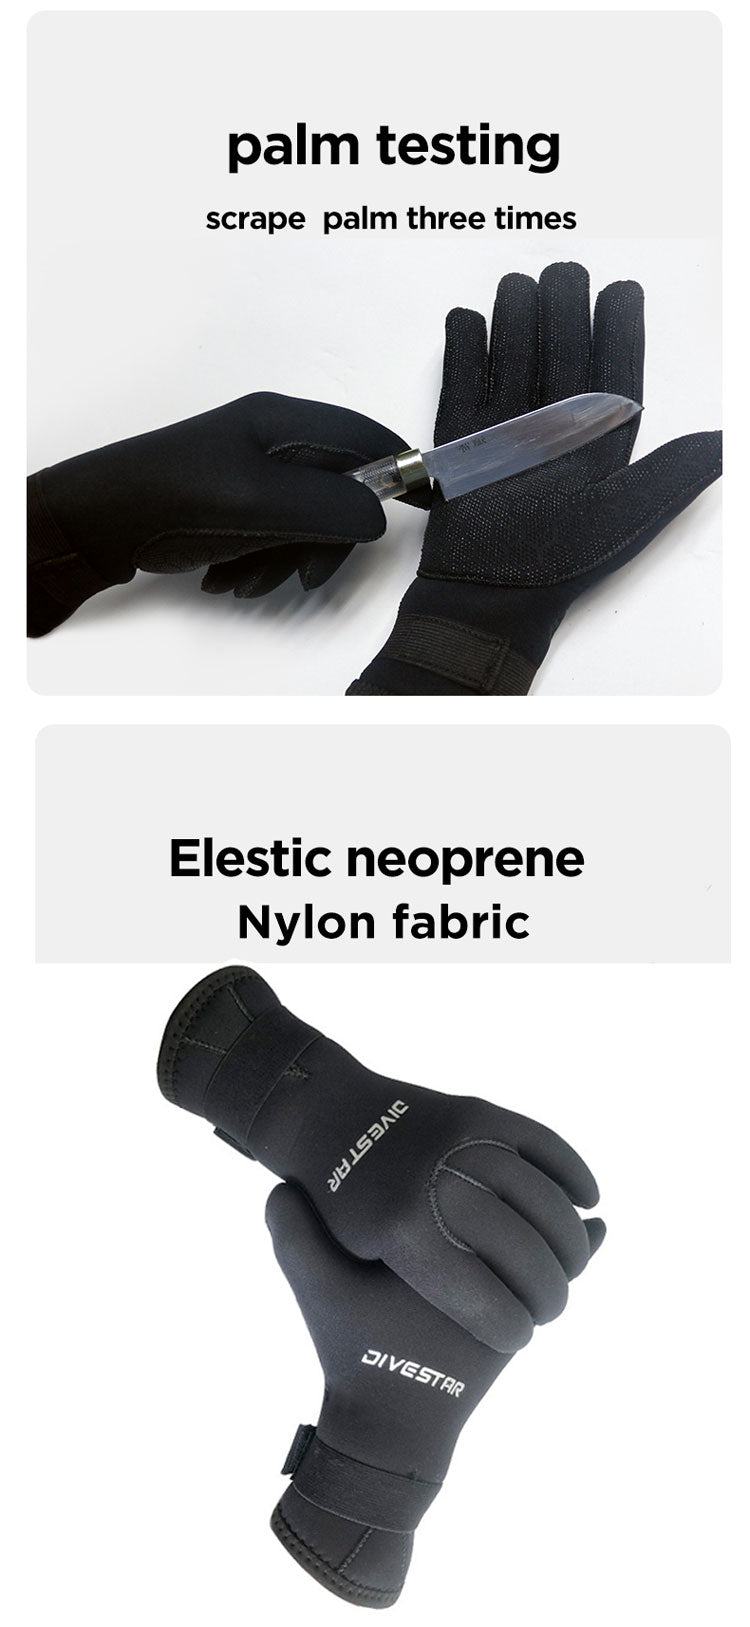 Cut and Stab-resistant gloves